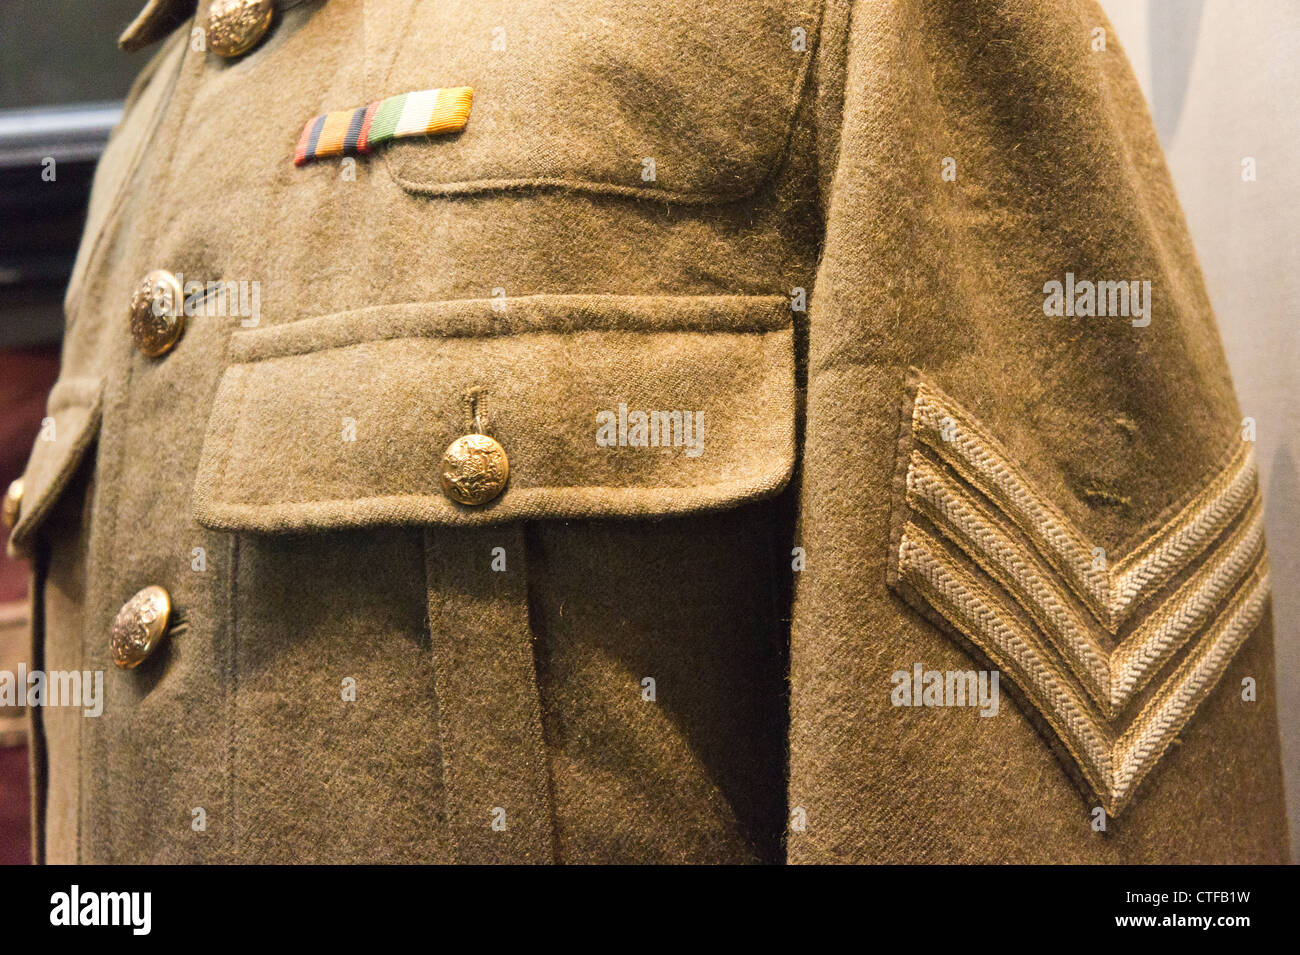 British army uniform showing medal ribbons and sergeant's stripes. - Stock Image